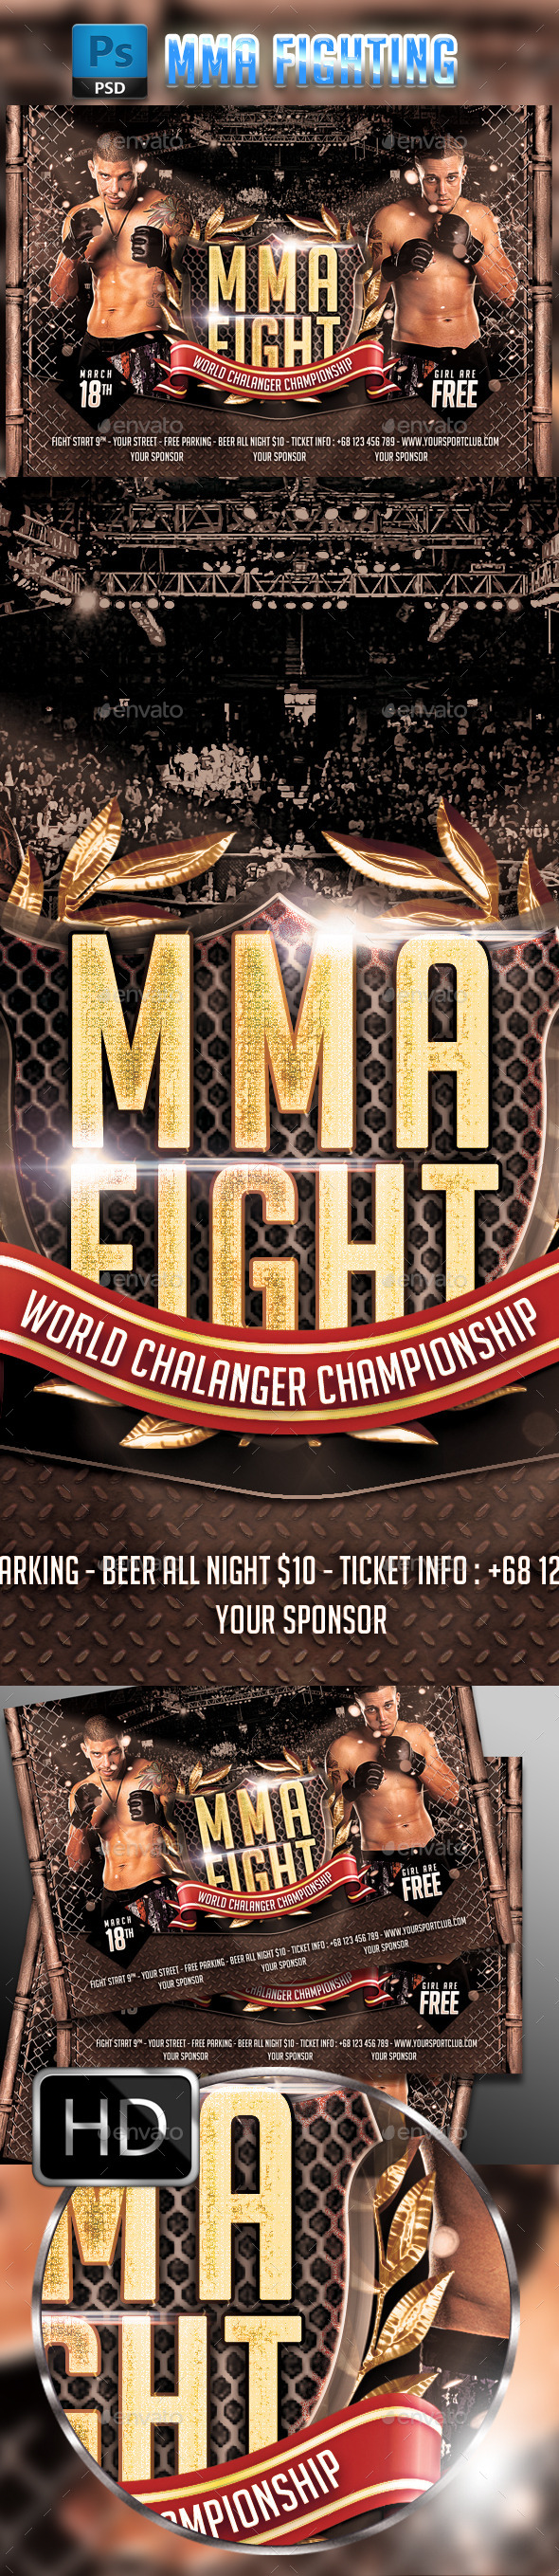 MMA Fighting Flyer Template #3 - Sports Events